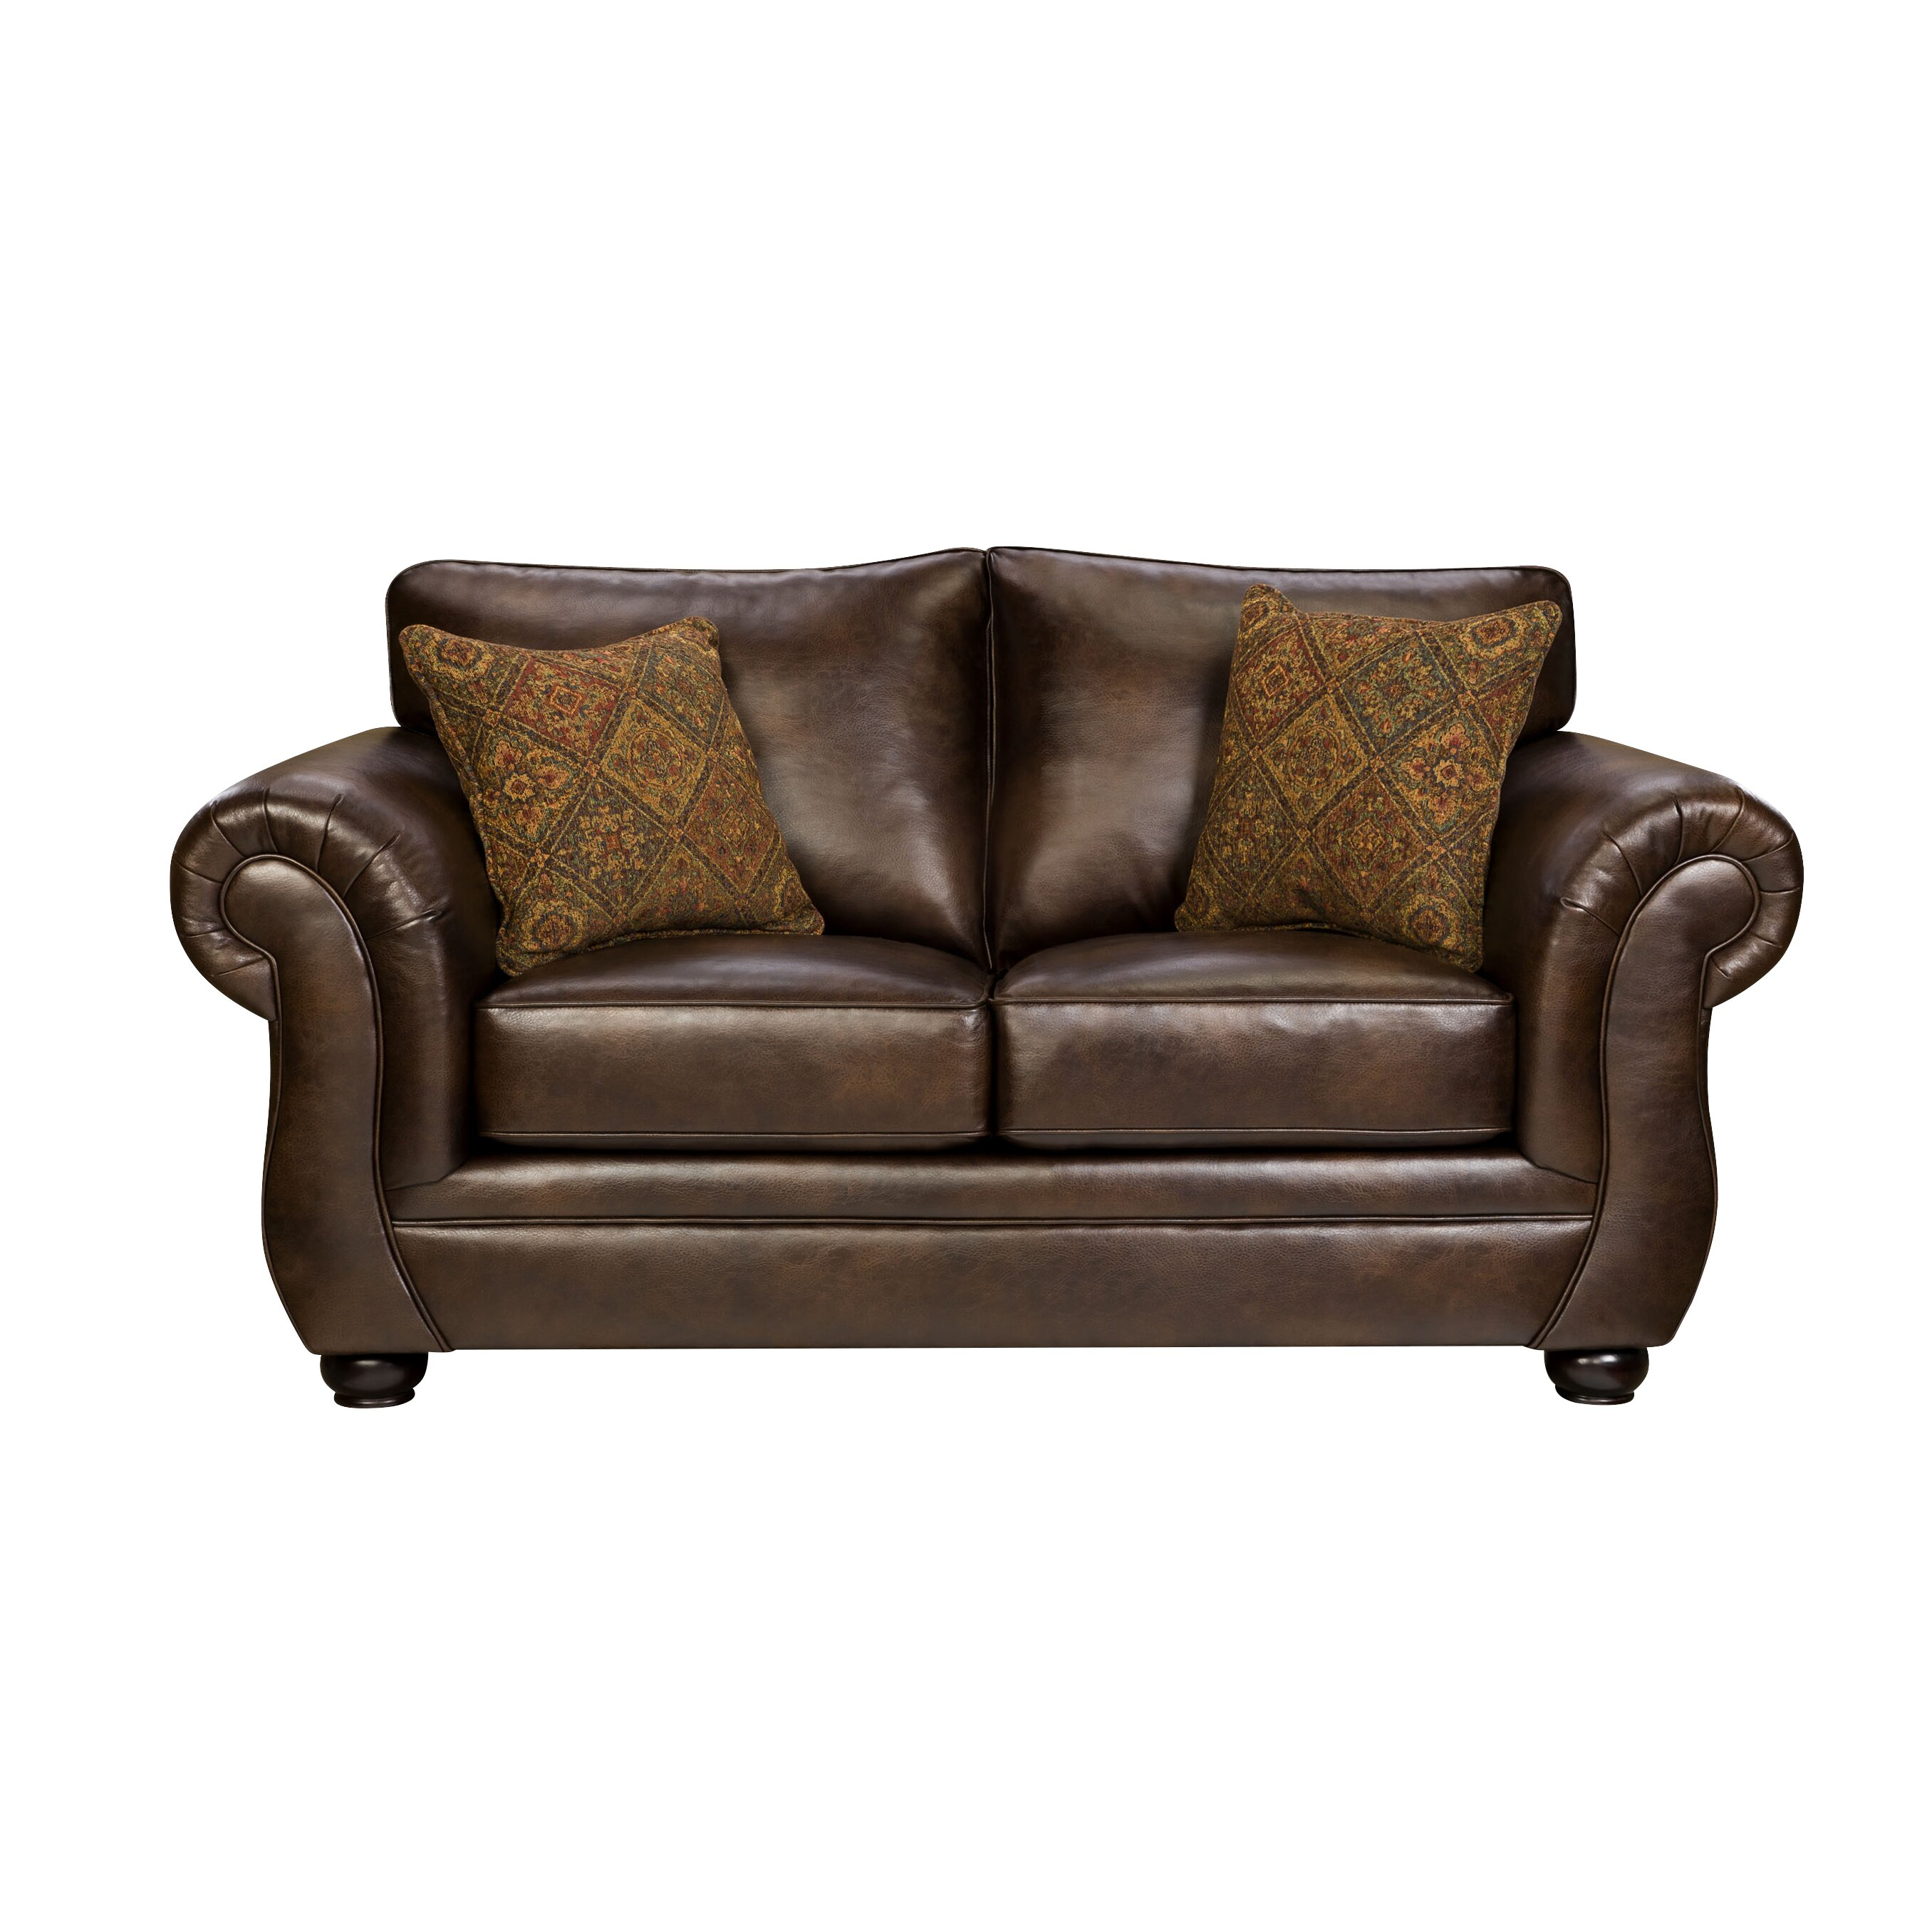 Simmons Upholstery Miracle Loveseat Reviews Wayfair